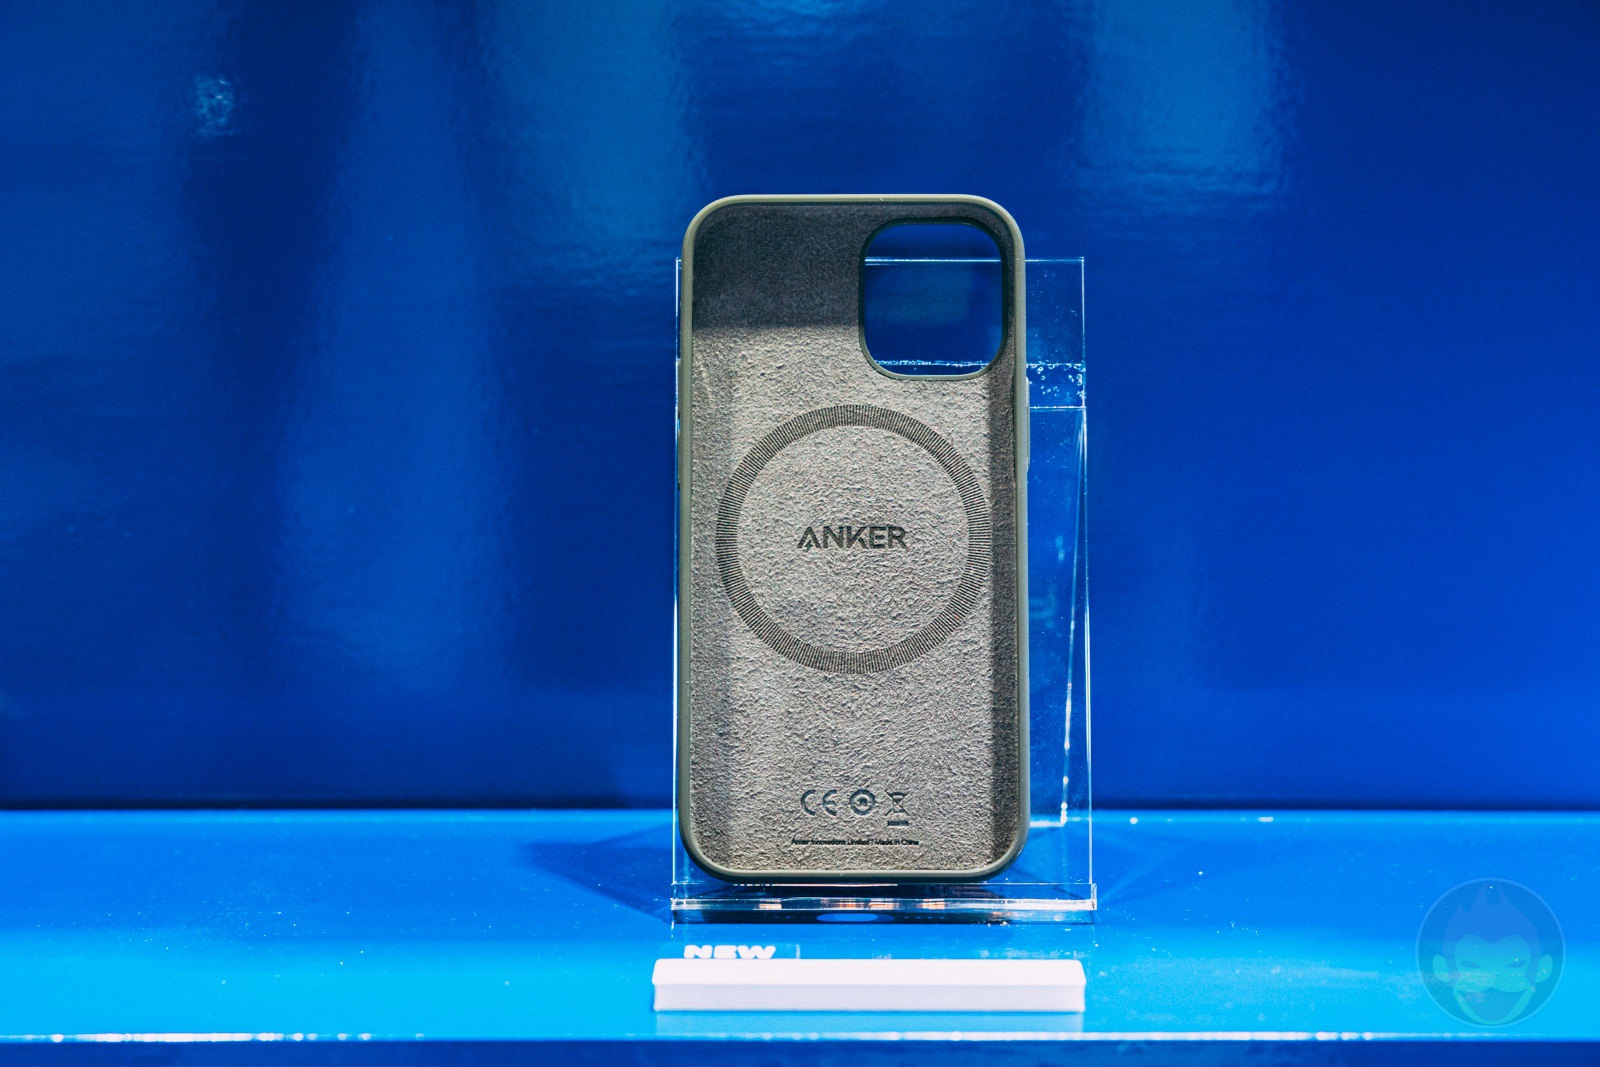 Anker Magnetic Silicone Case for iPhone12 12Pro Handson 03